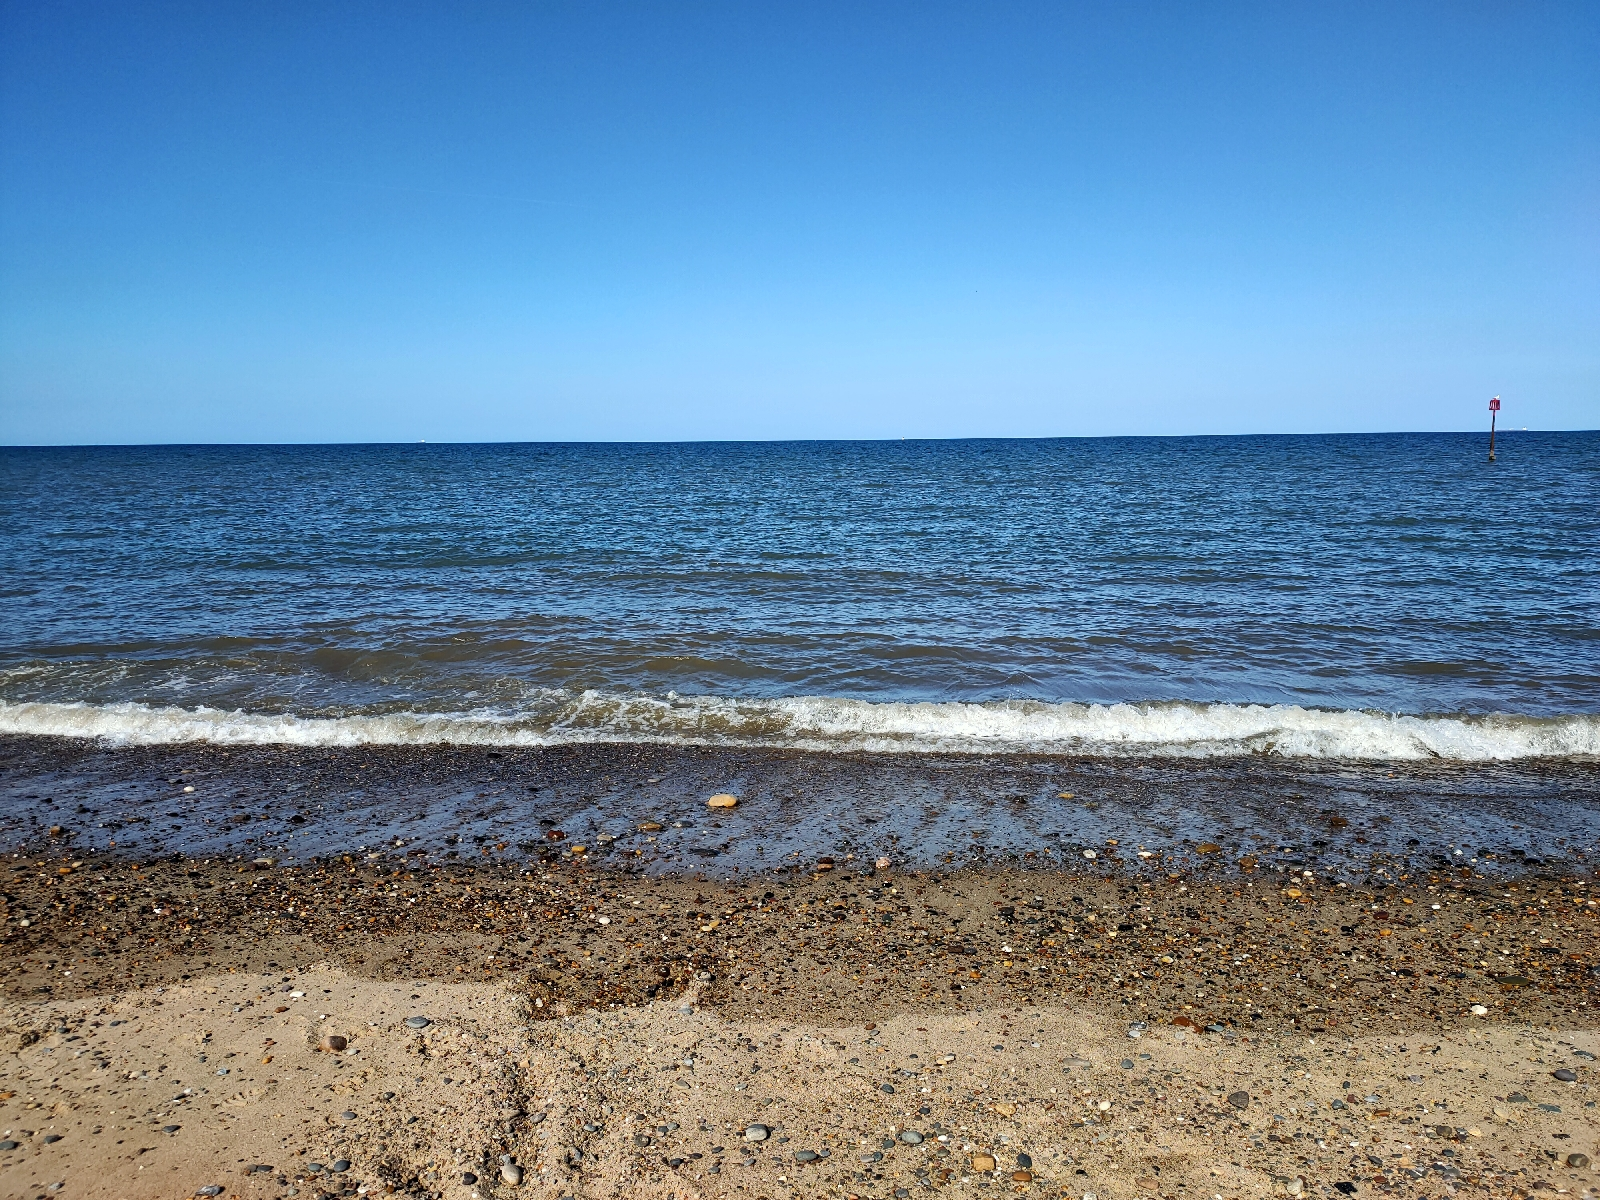 A beach, looking out to sea. Bright blue skies.